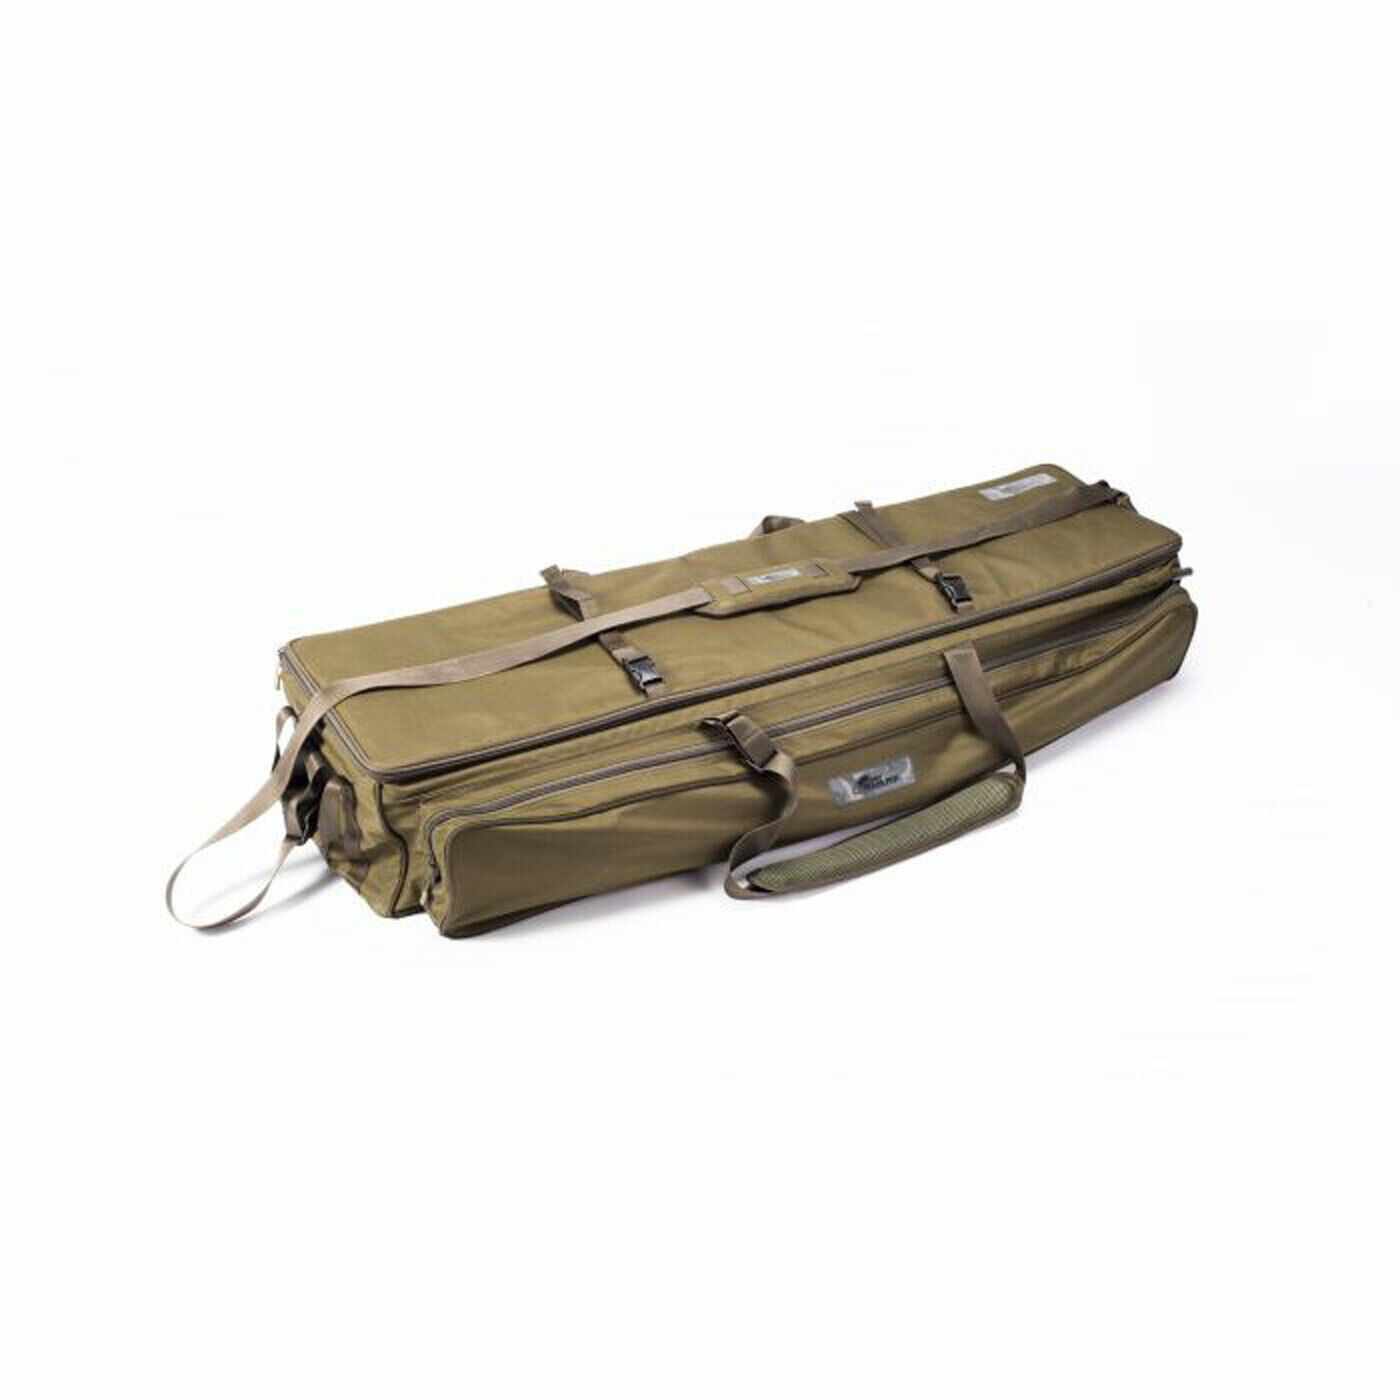 Nash Dwarf 3 Rod Carry System 9ft New 2019 - Free Delivery